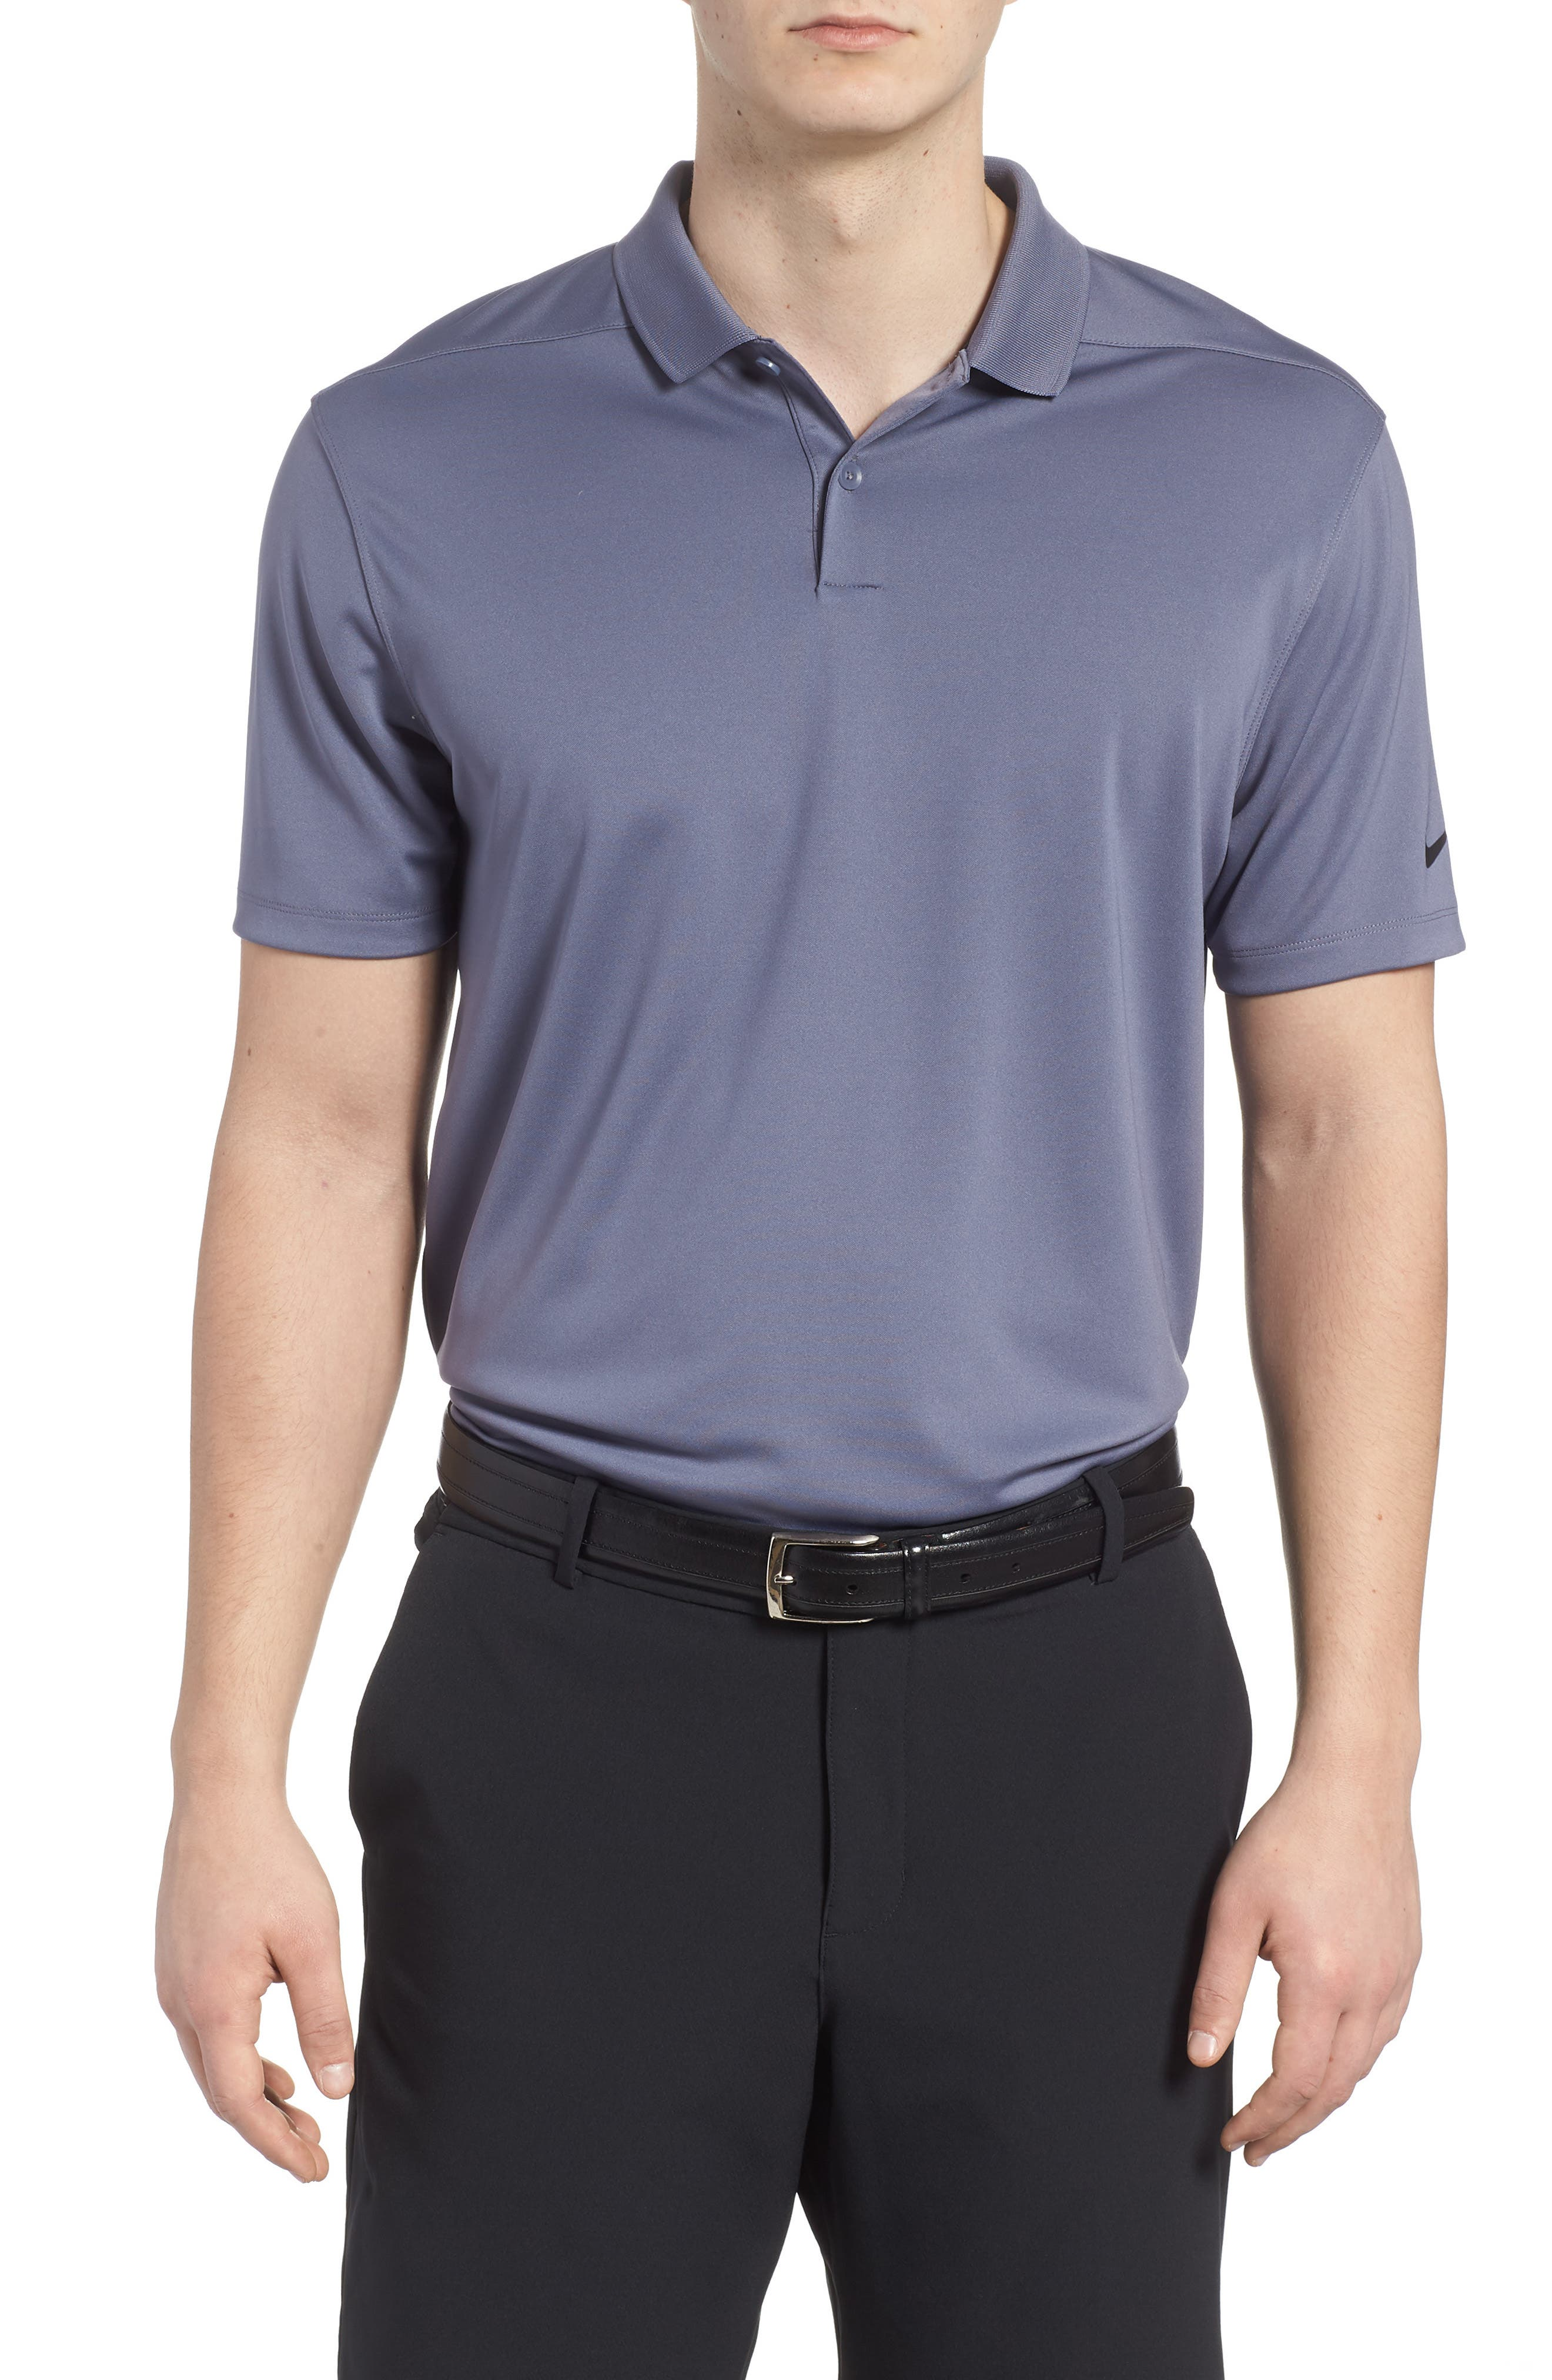 Dry Victory Golf Polo,                             Main thumbnail 1, color,                             Light Carbon/ Black